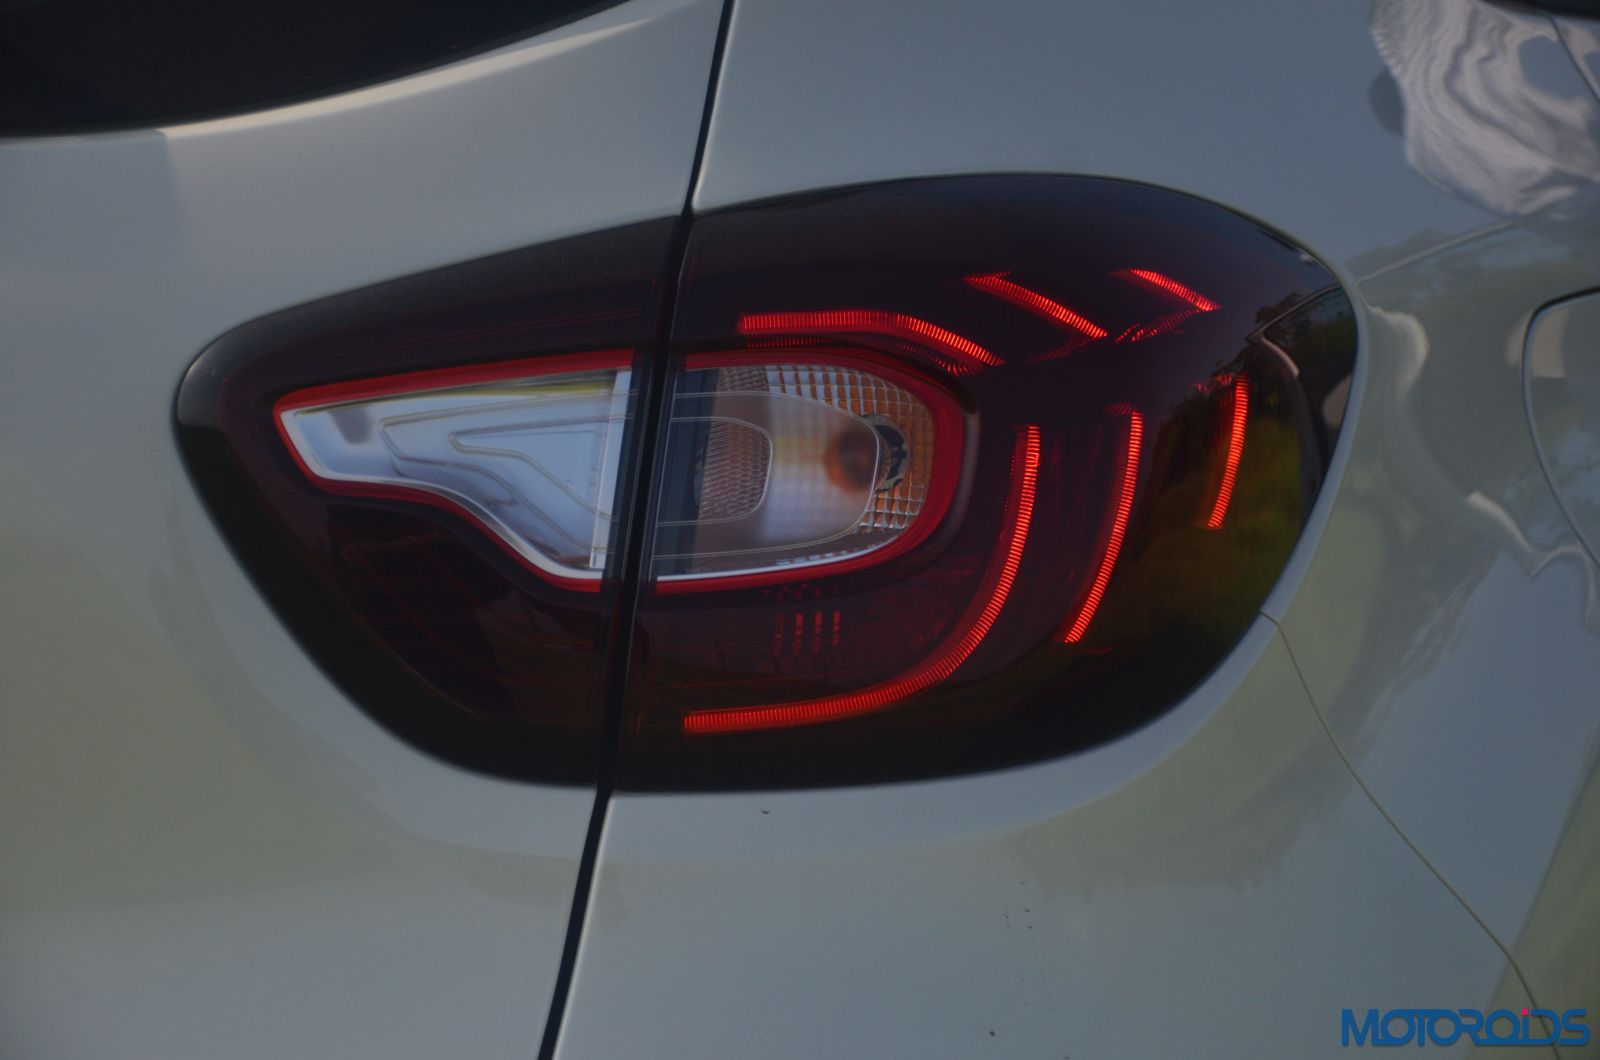 New-Renault-Captur-taillight-pattern